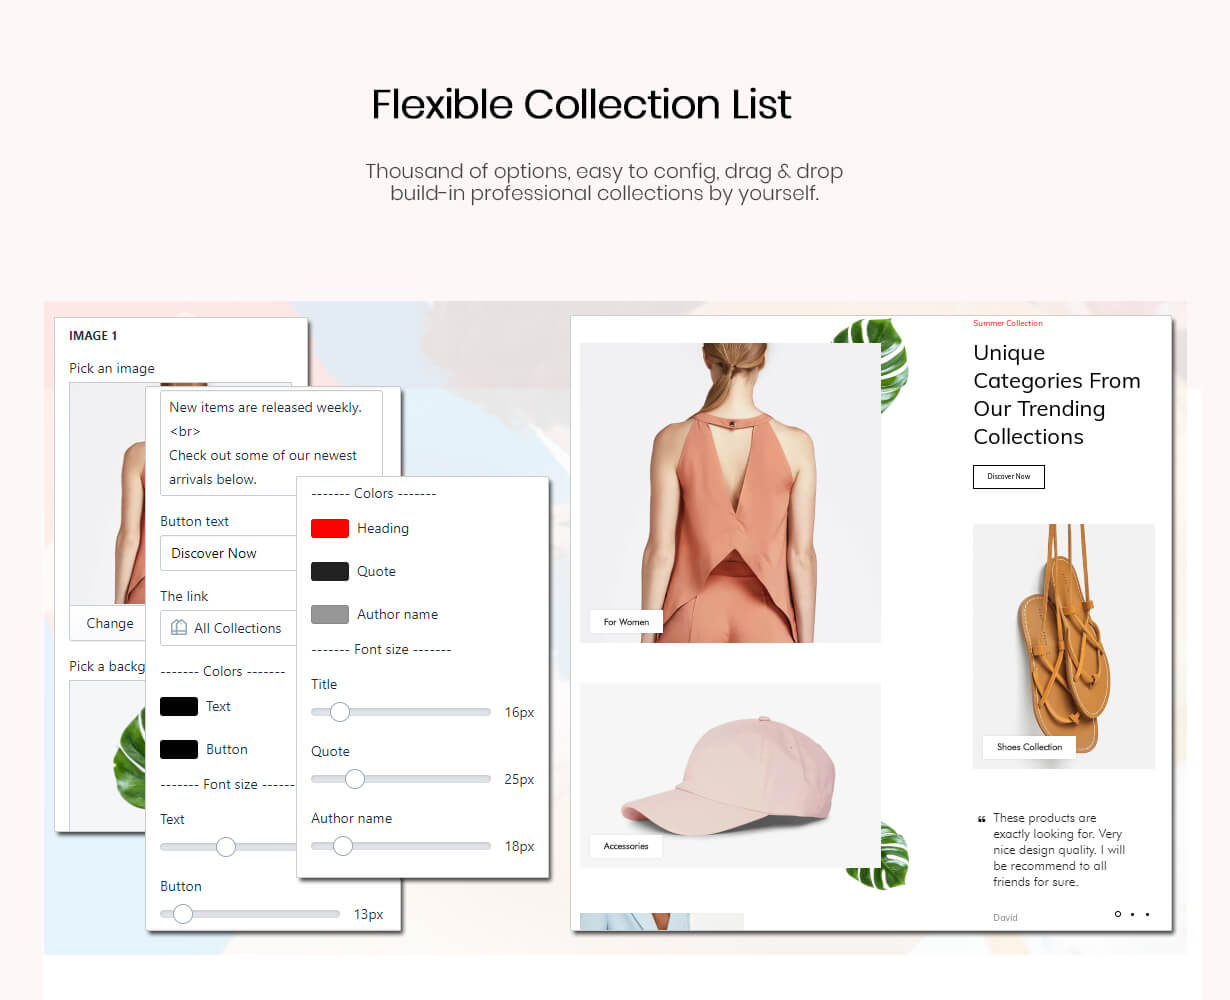 Flexible collection list section